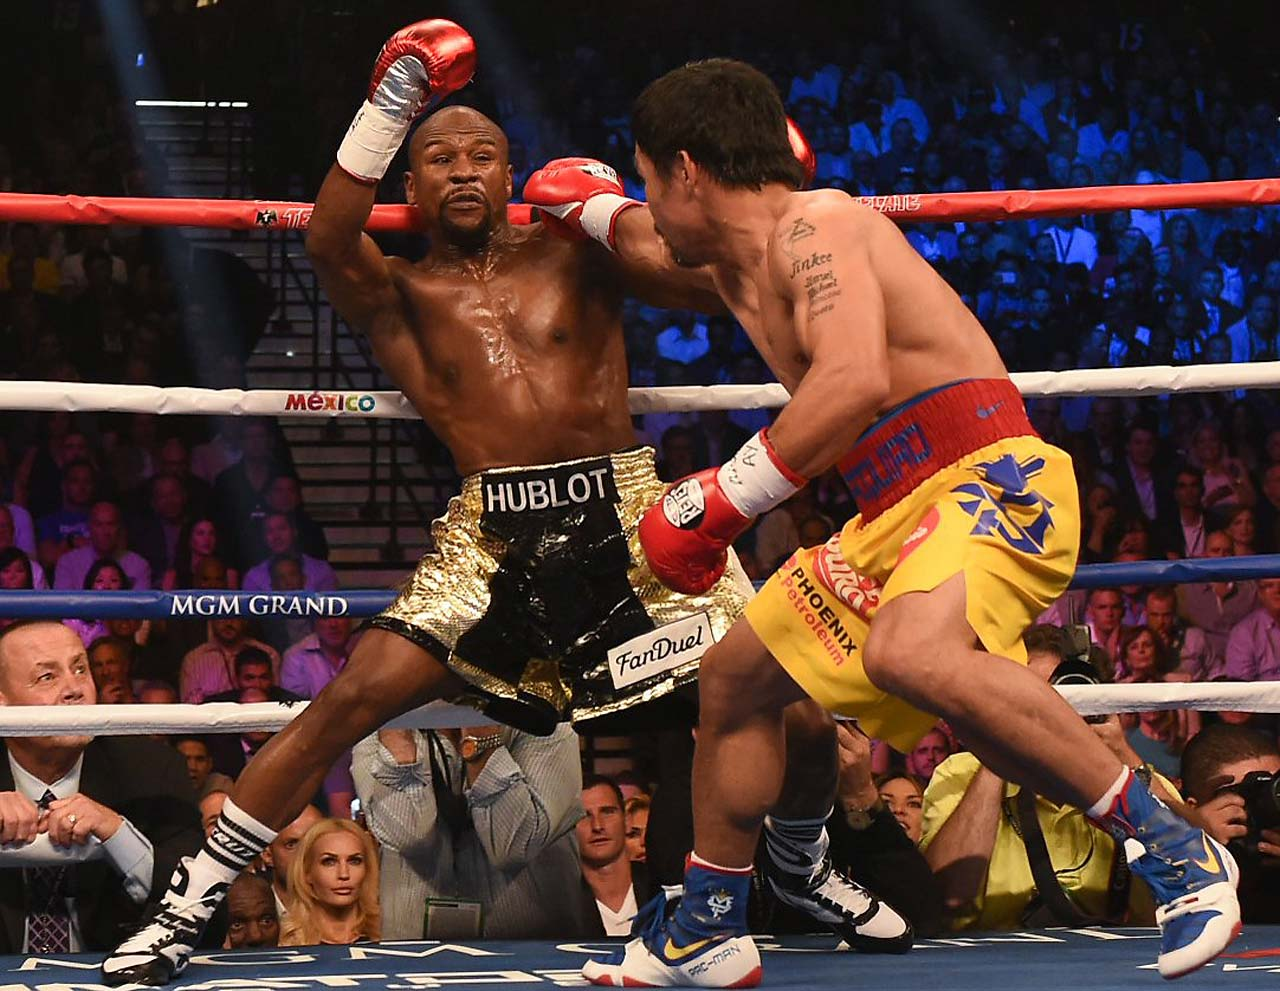 Floyd Mayweather won a unanimous decision over Manny Pacquiao to run his record to 48-0 on May 2. Here are SI's best pictures from the bout.